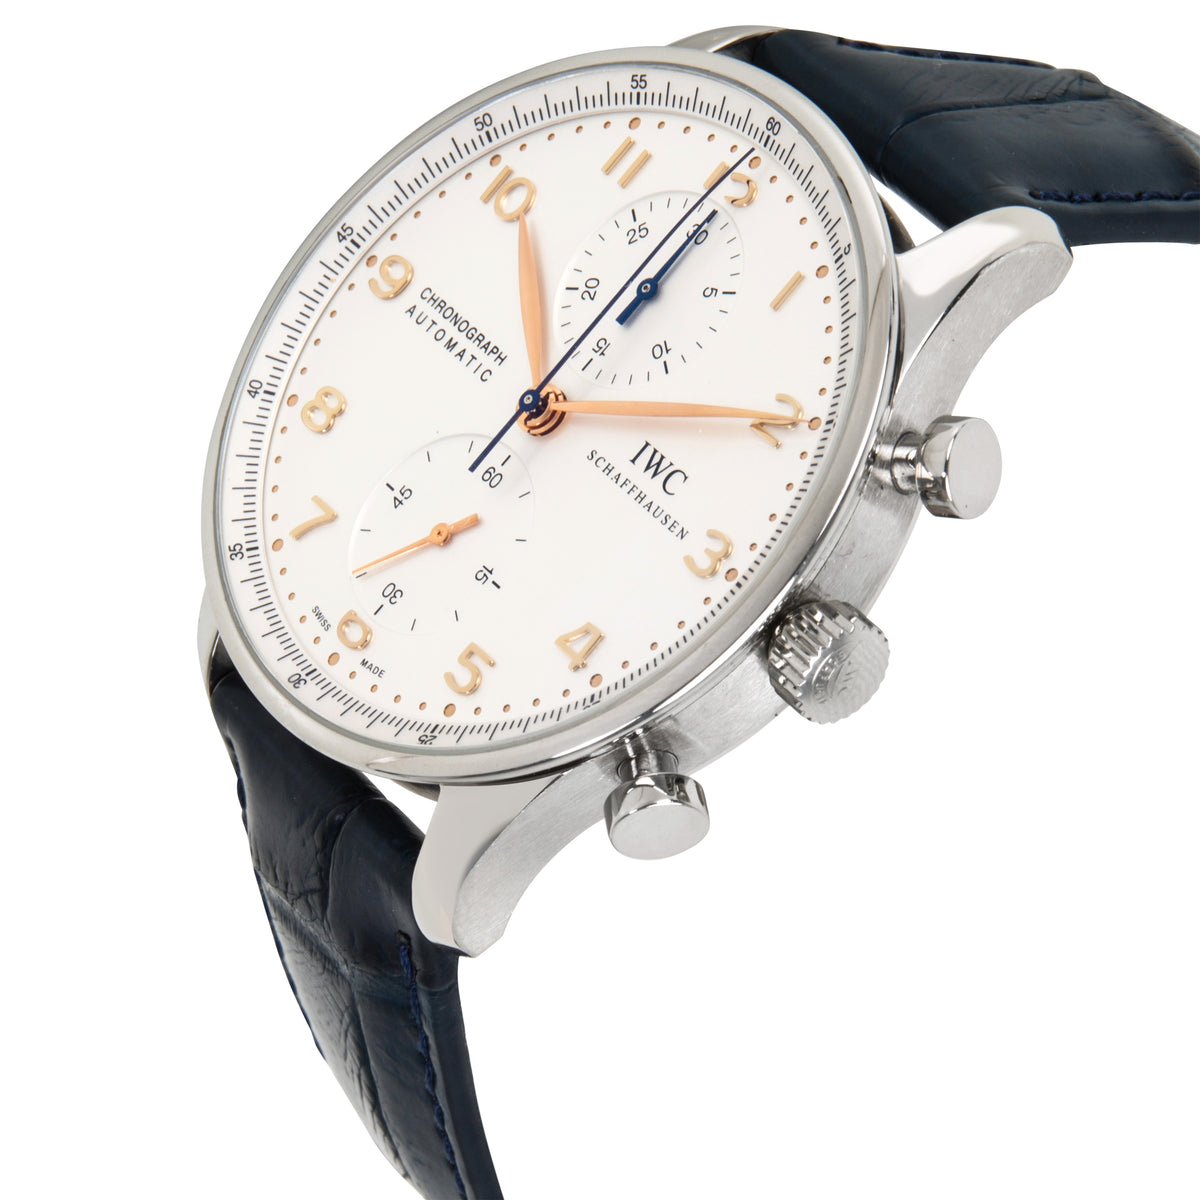 IWC Portugieser Chronograph IW371445 Men's Watch in  Stainless Steel